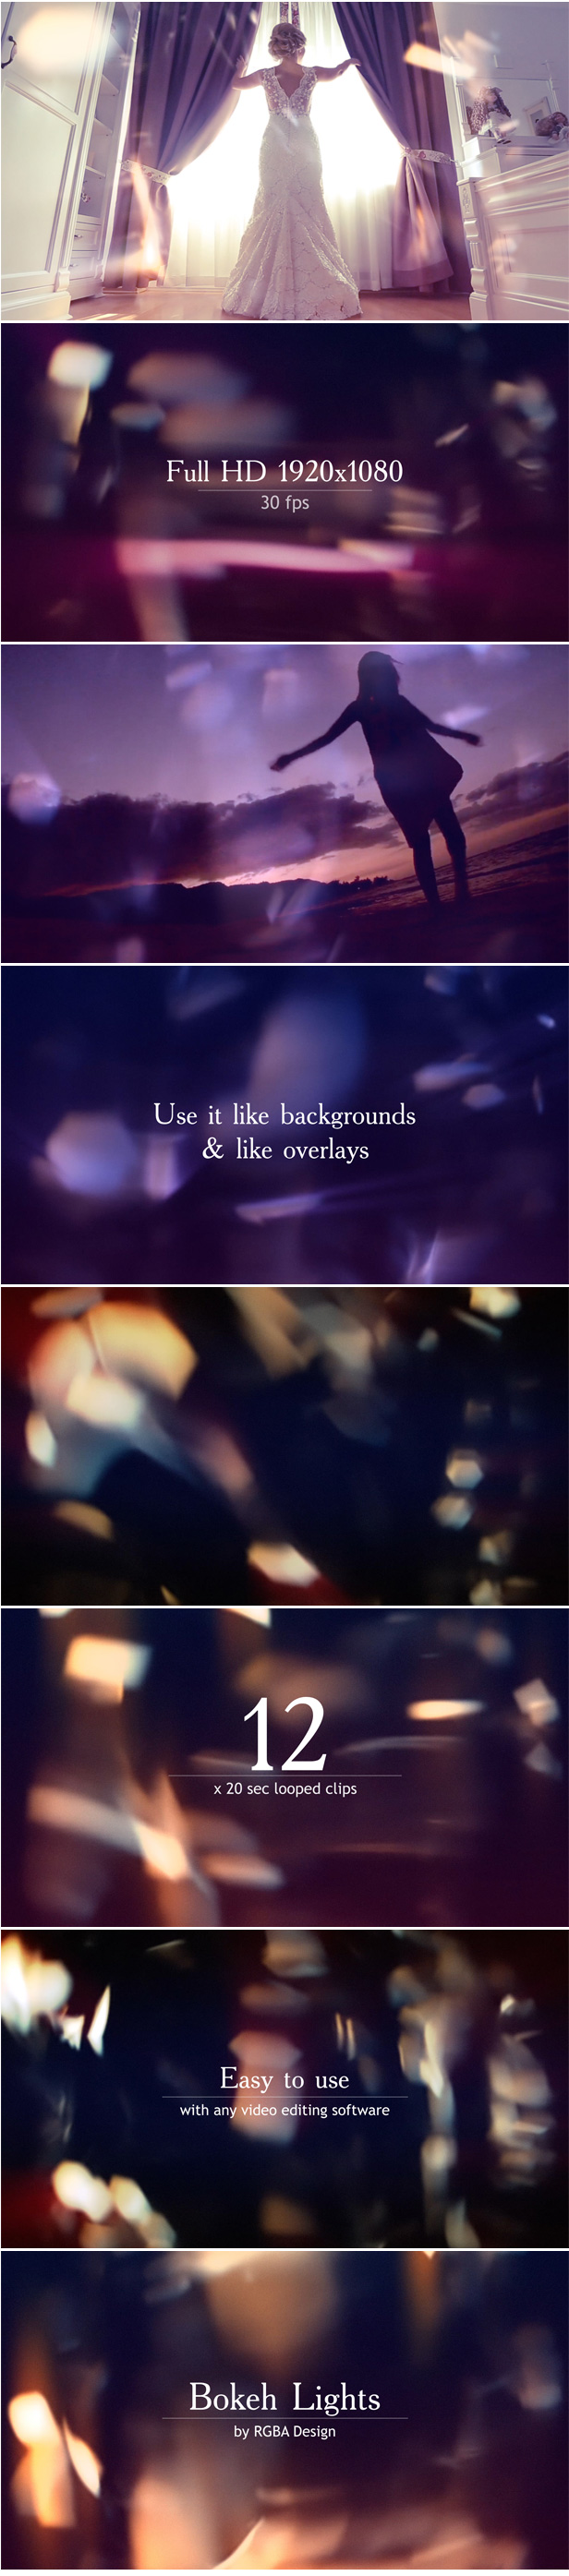 Bokeh Lights Backgrounds